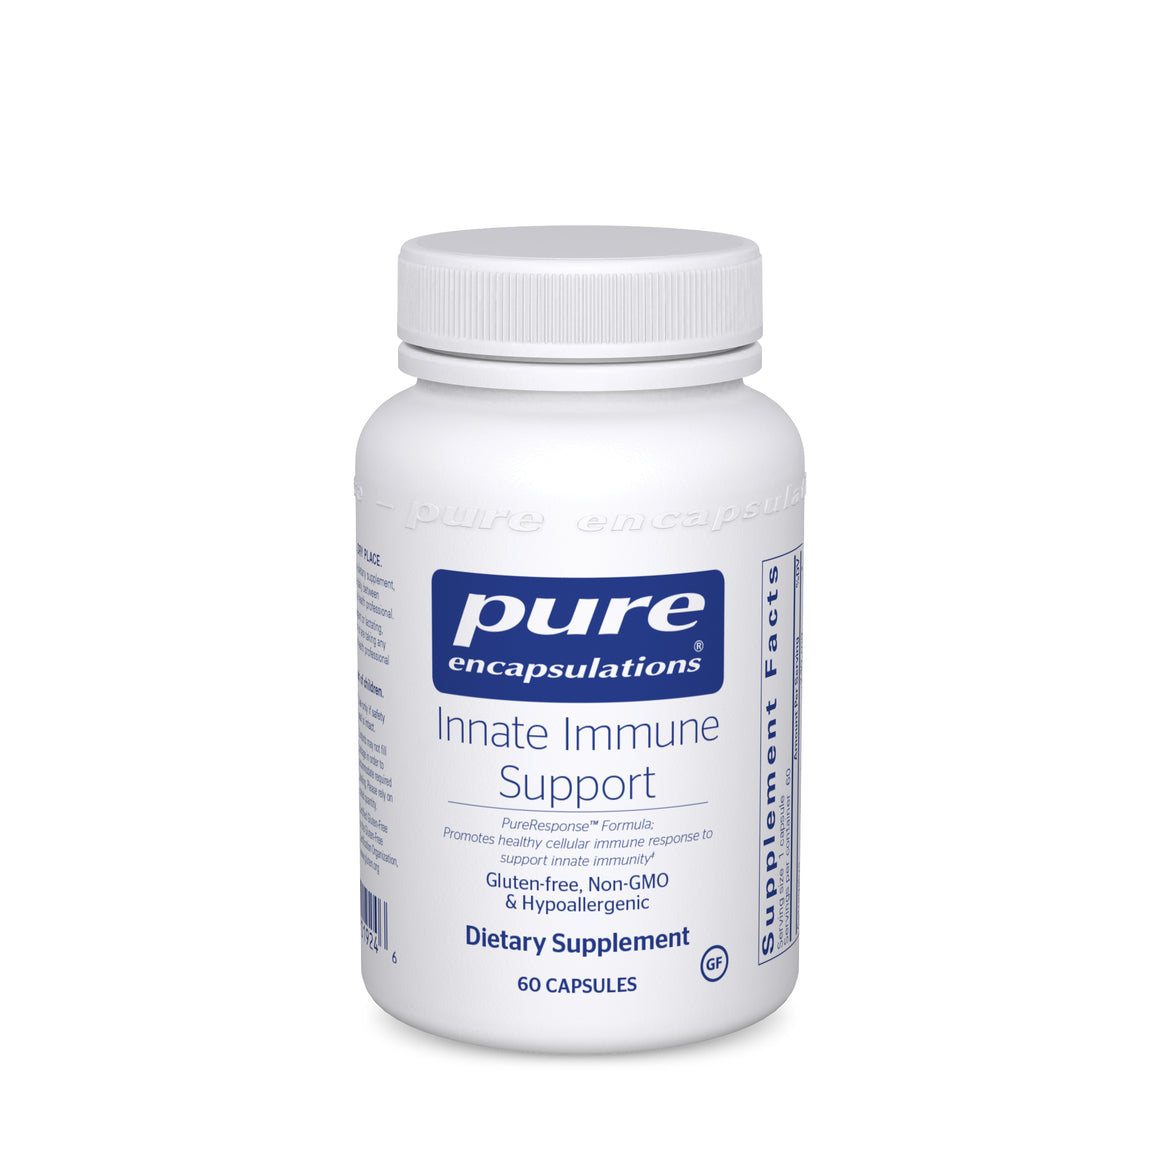 A bottle of Pure Innate Immune Support